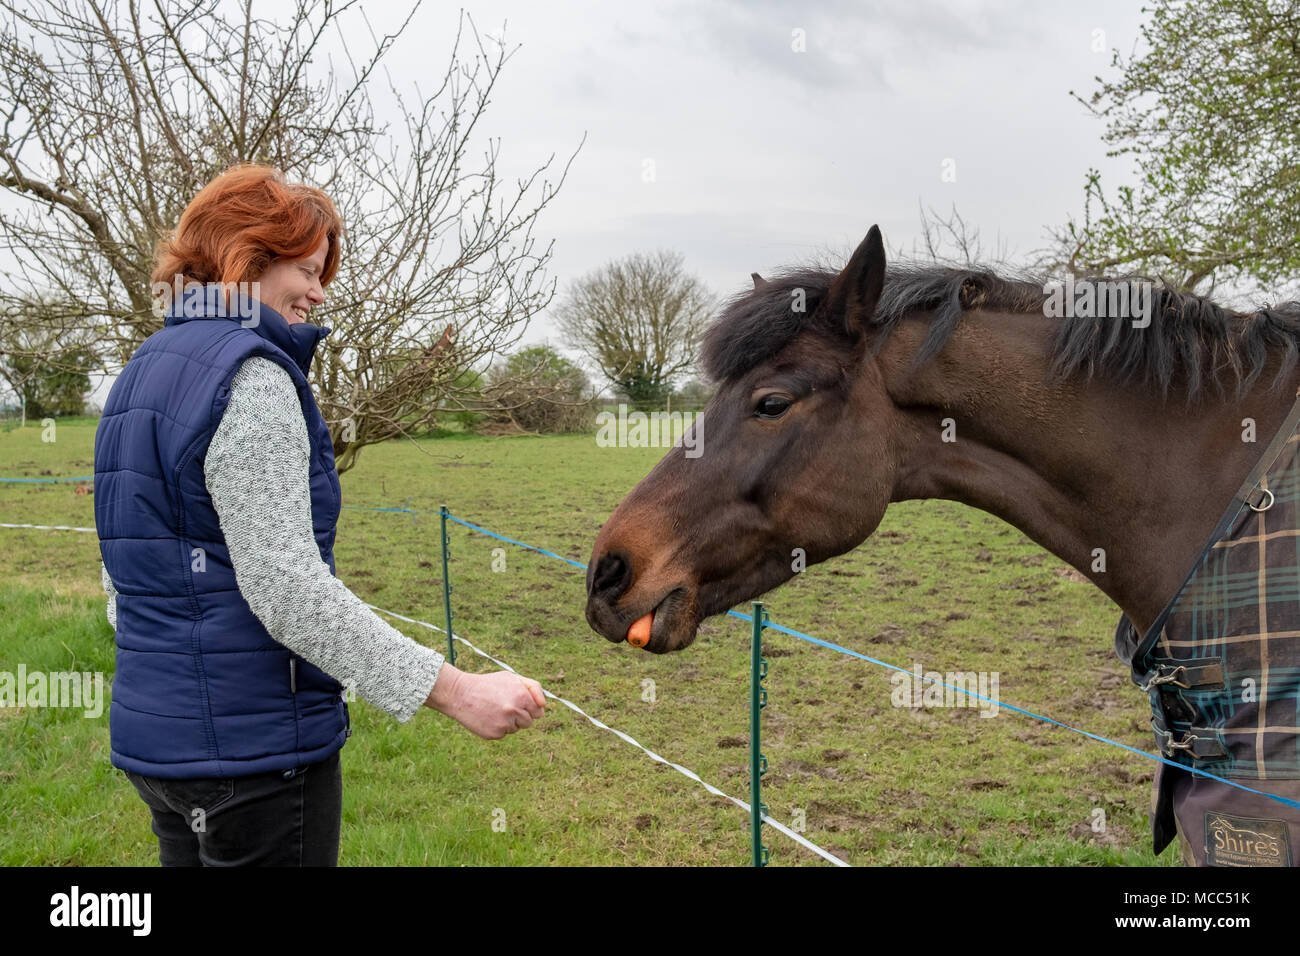 Owner of a horse seen feeding him a carrot as seen in his springtime grazing field. Notice the electric fence in the foreground. - Stock Image